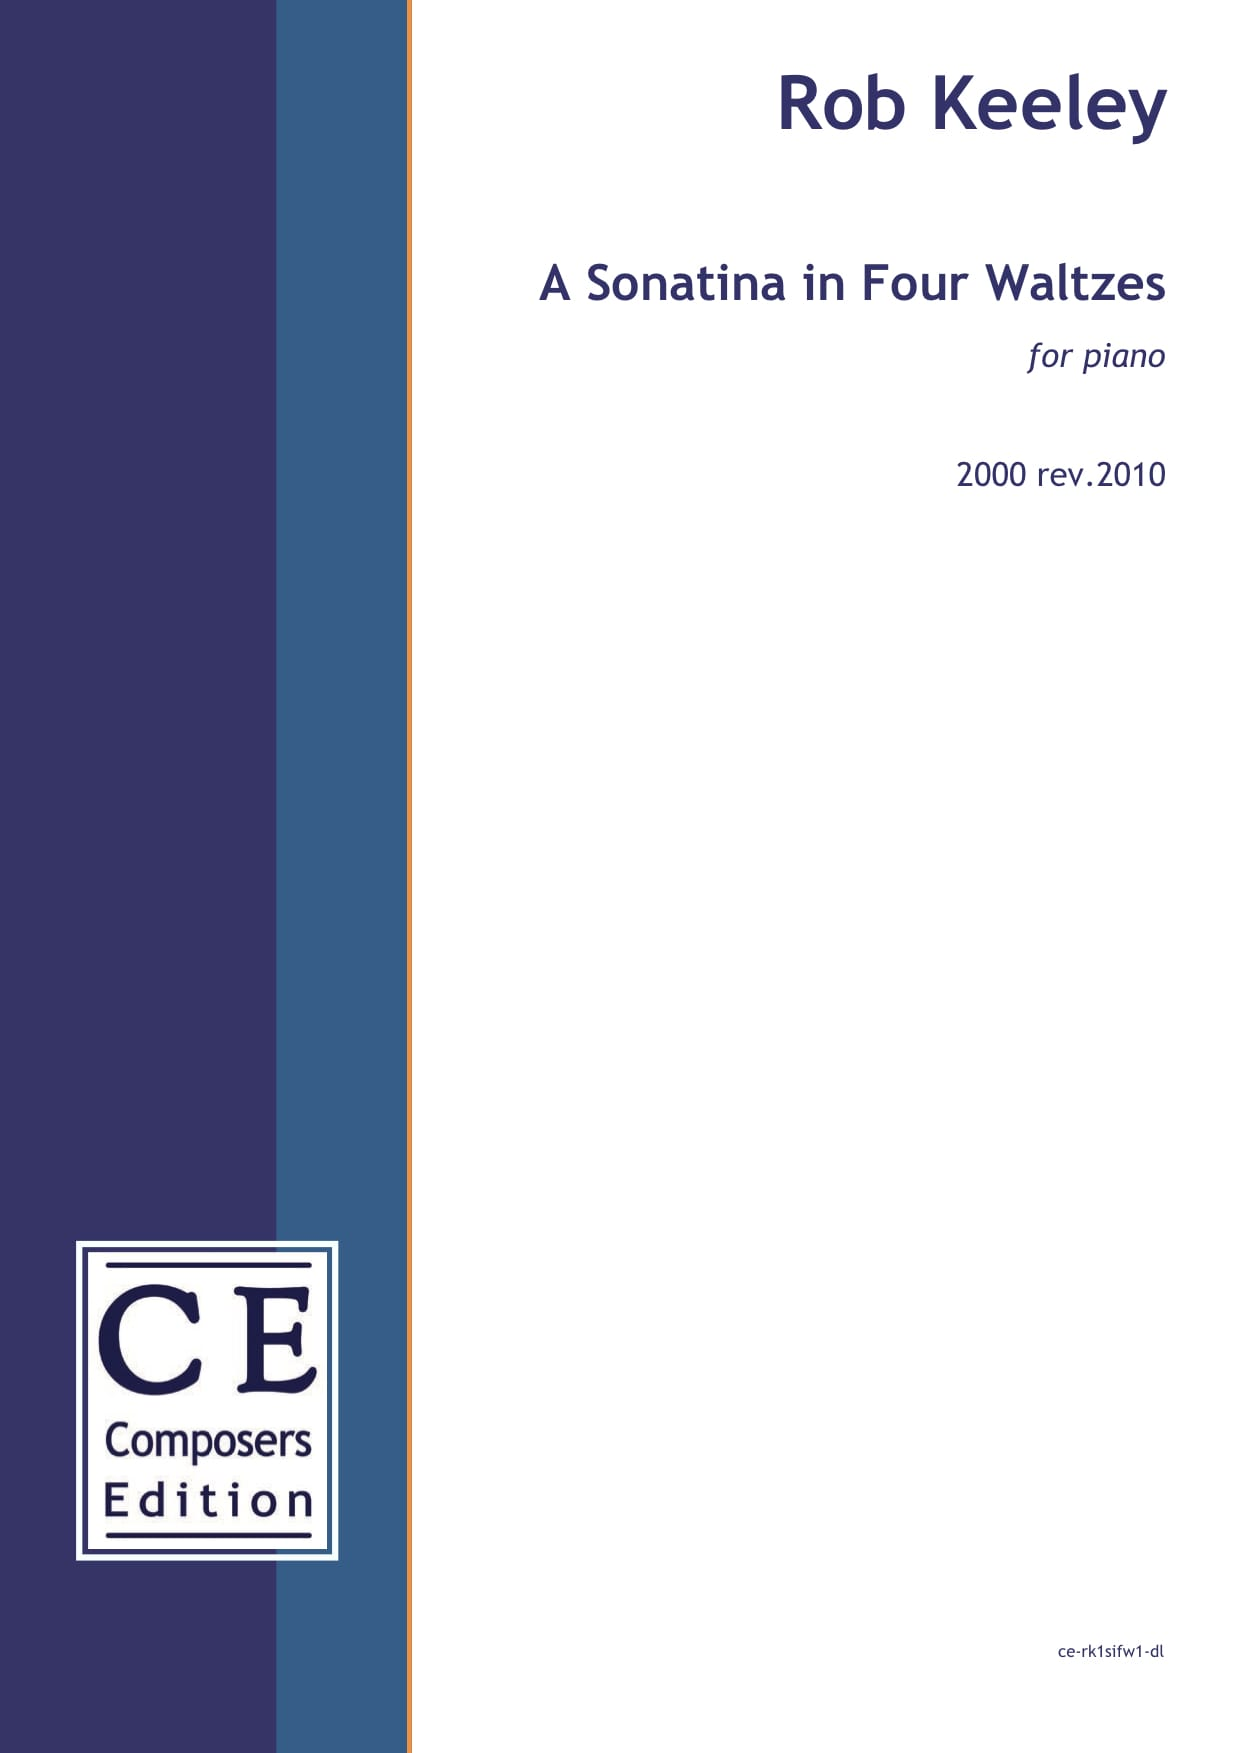 Rob Keeley: A Sonatina in Four Waltzes for piano